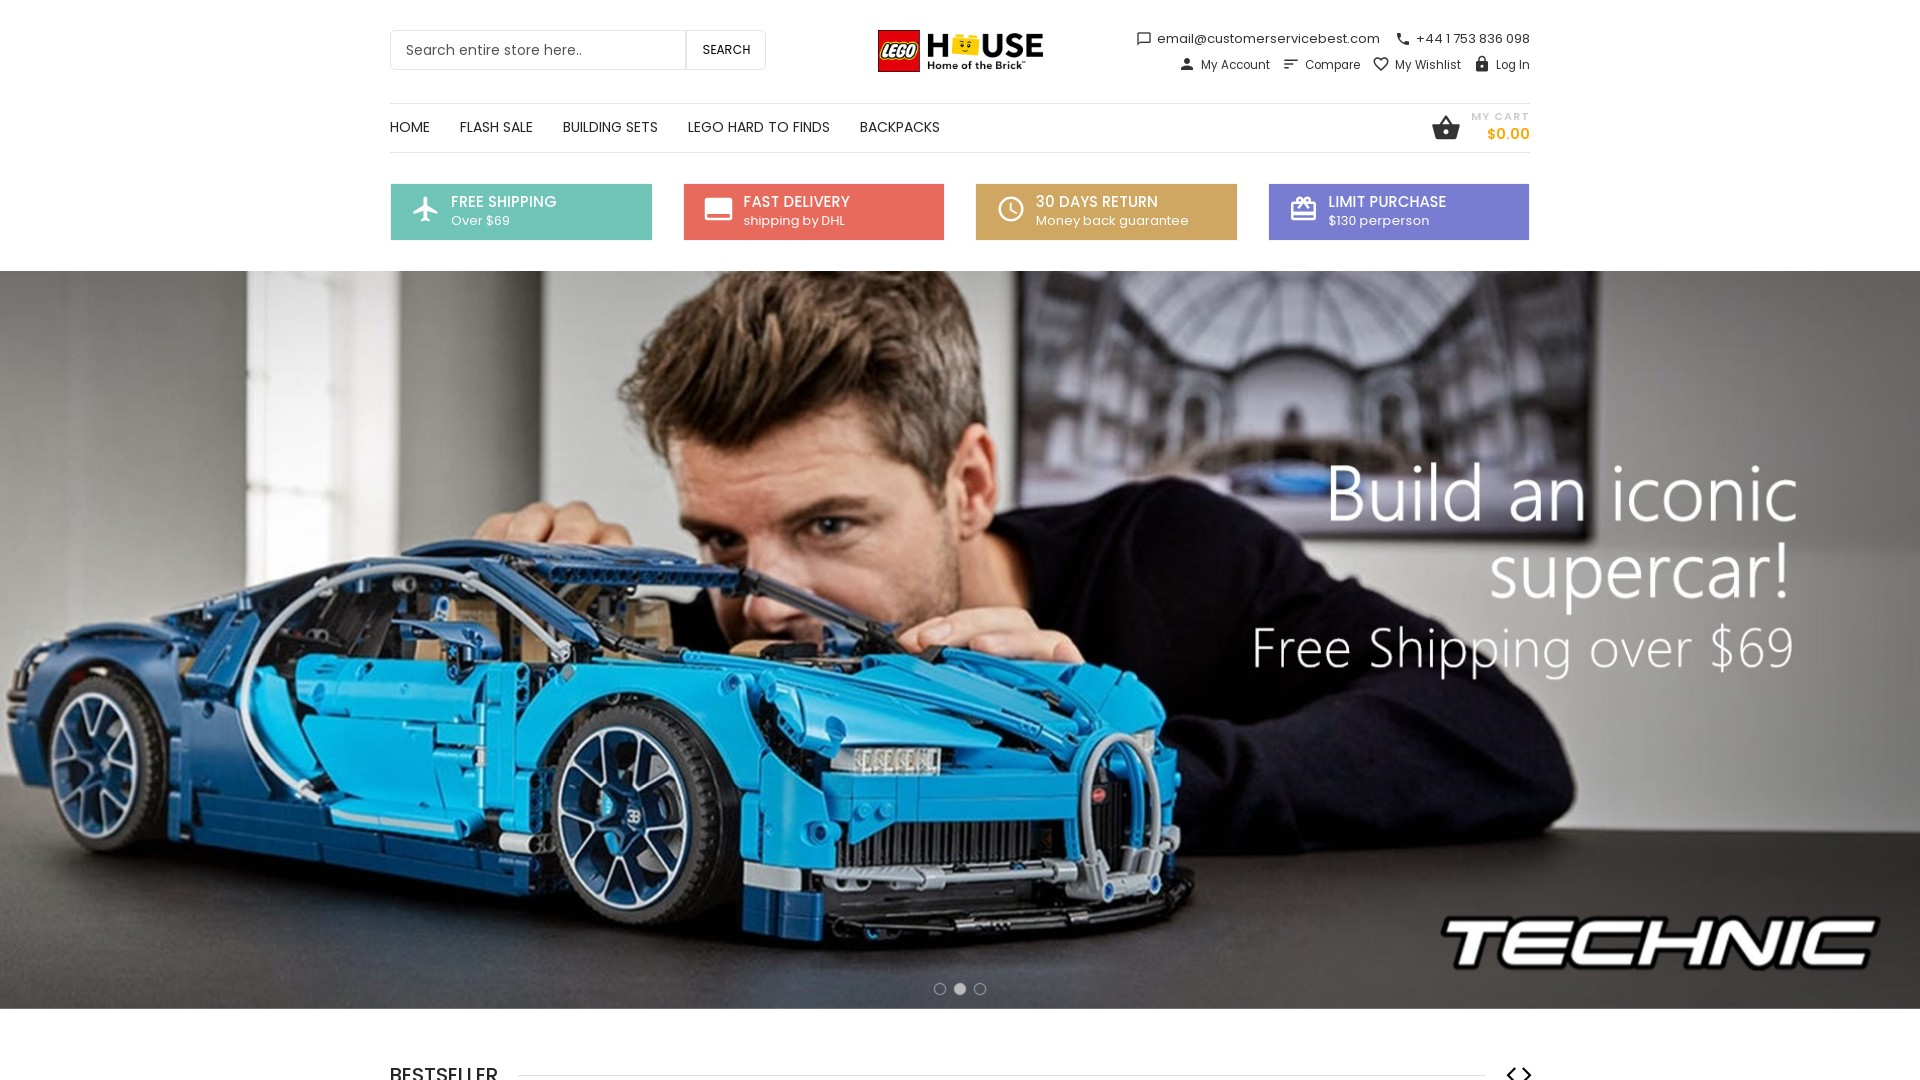 Is Toyswarehouse Shop a Scam? Review Of The Online Store